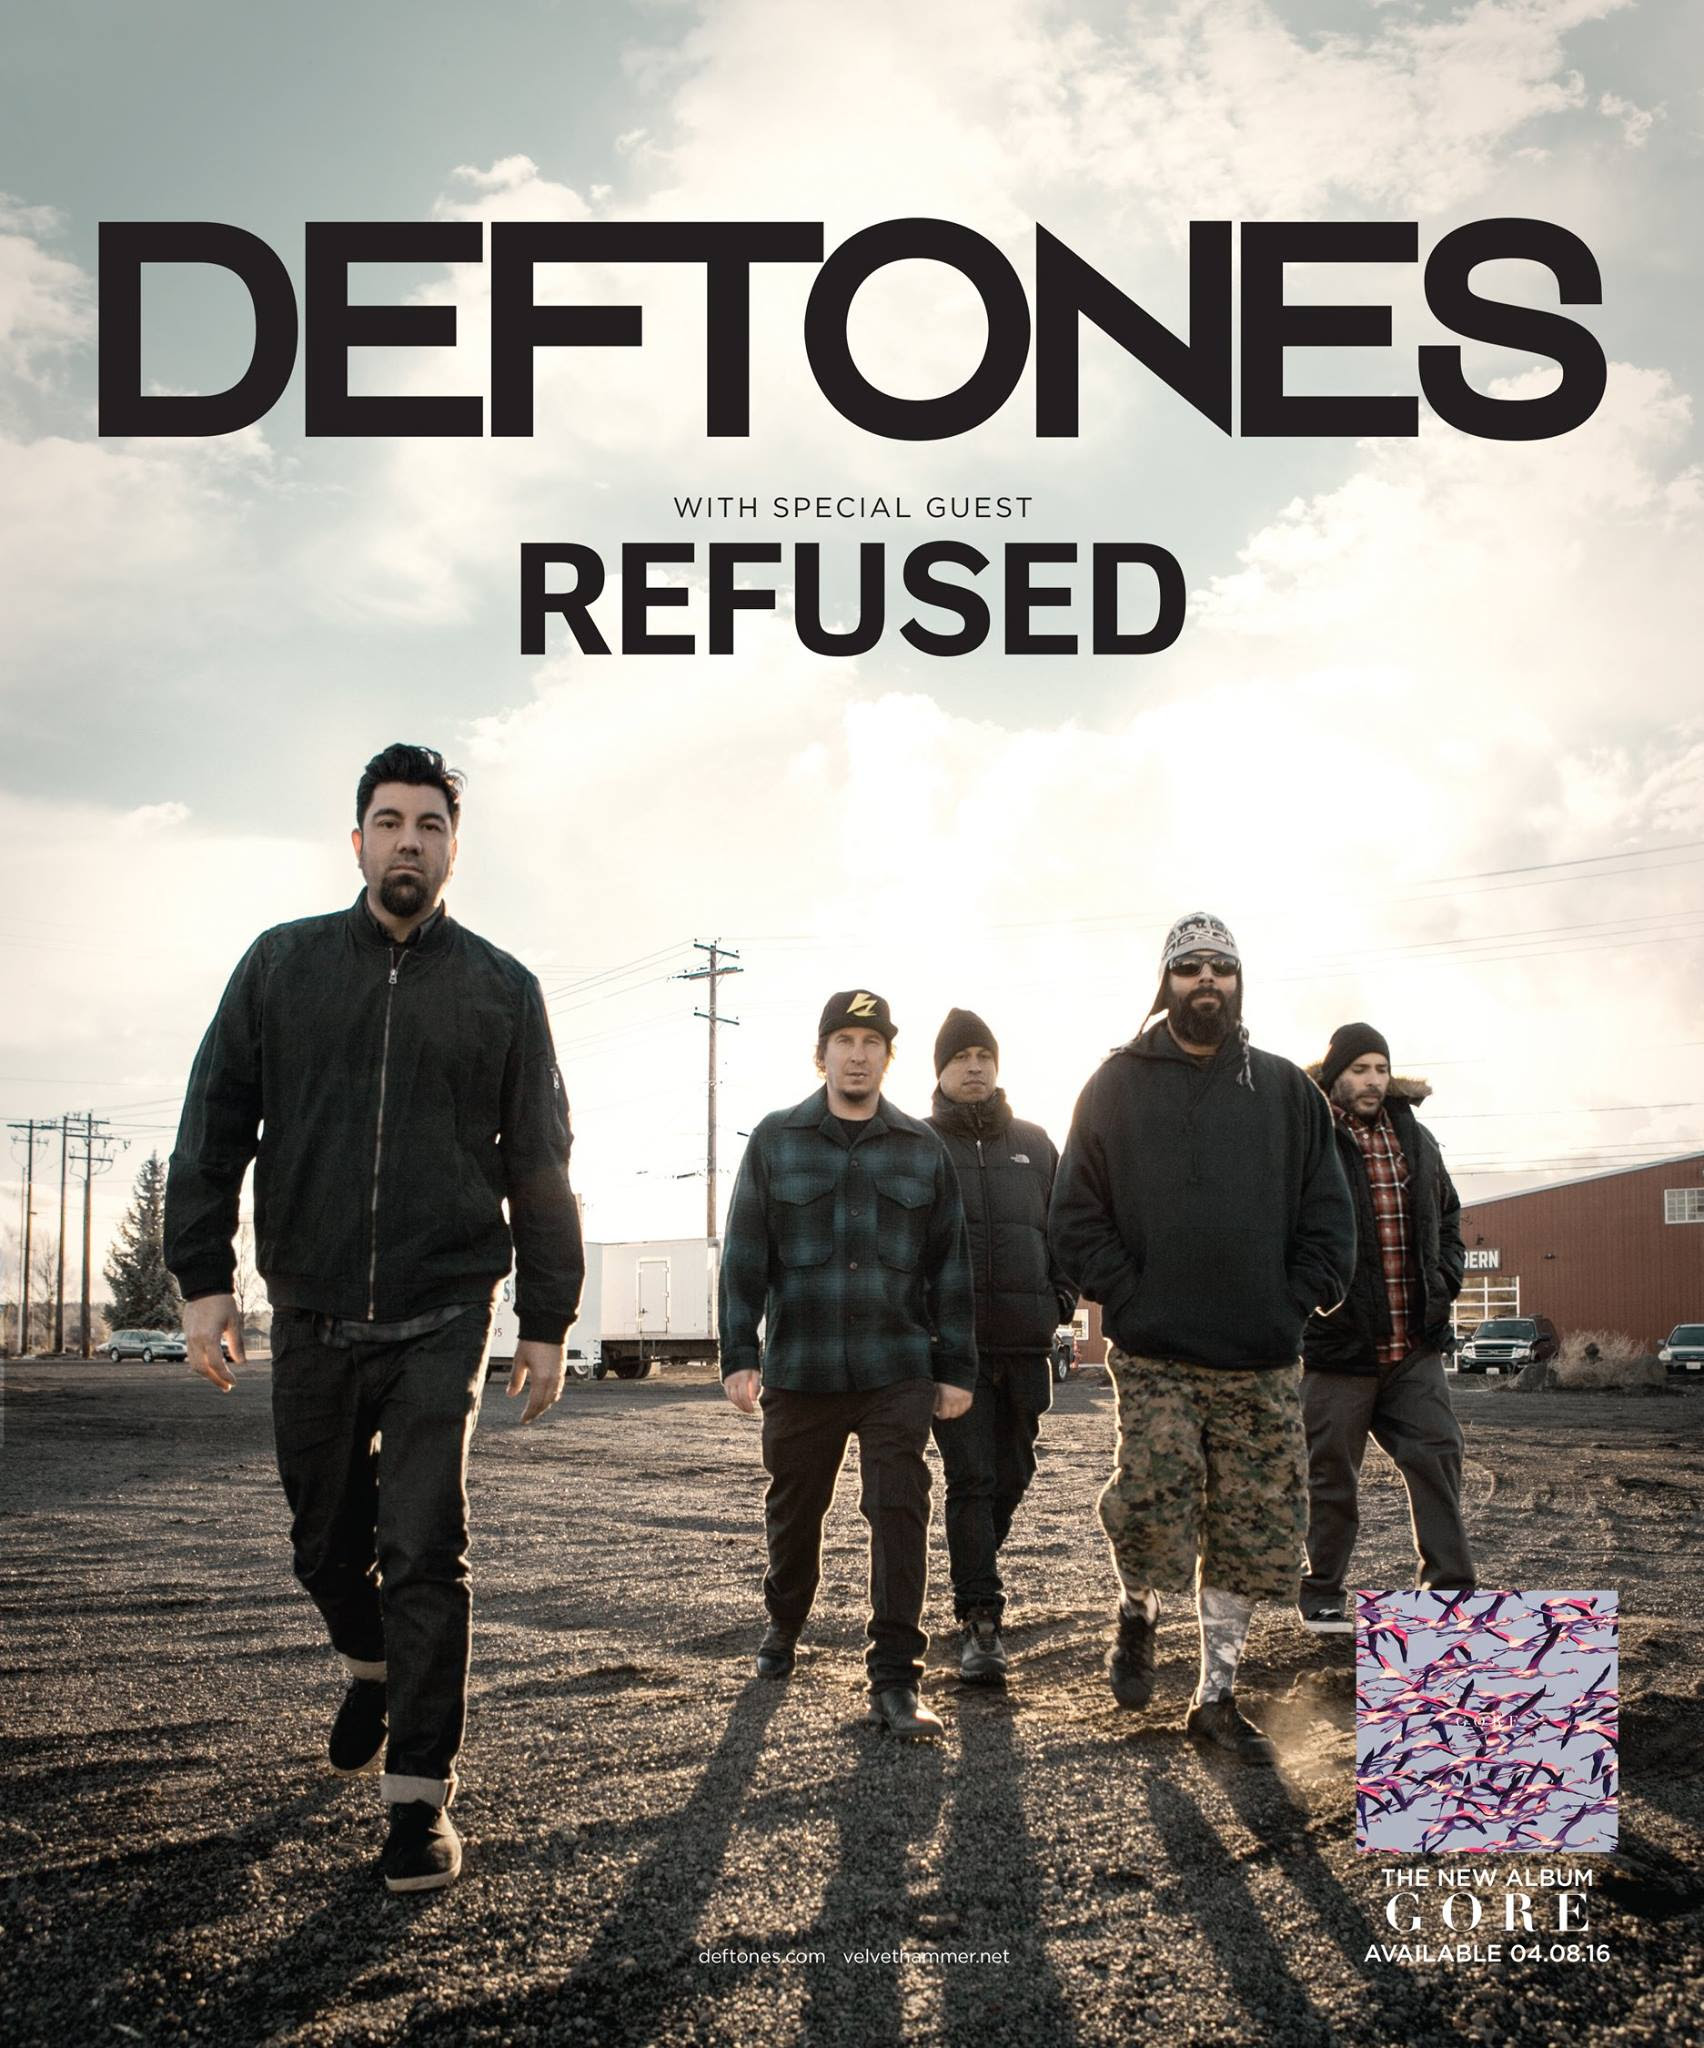 Deftones on Tour